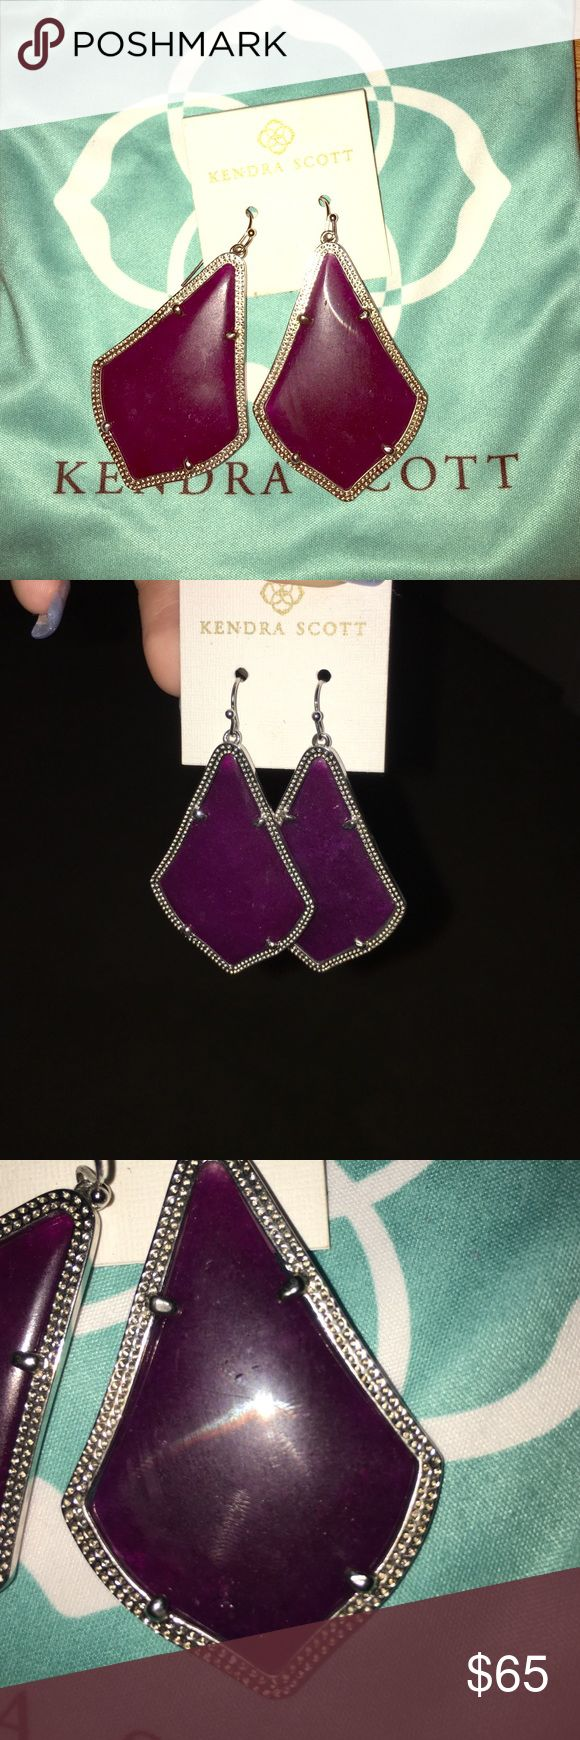 Kendra Scott Alex Rose Purple Quart Earrings They are purple alex rose earrings with sliver lining, custom made at the color bar in the Kendra Scott store, good condition Kendra Scott Jewelry Earrings